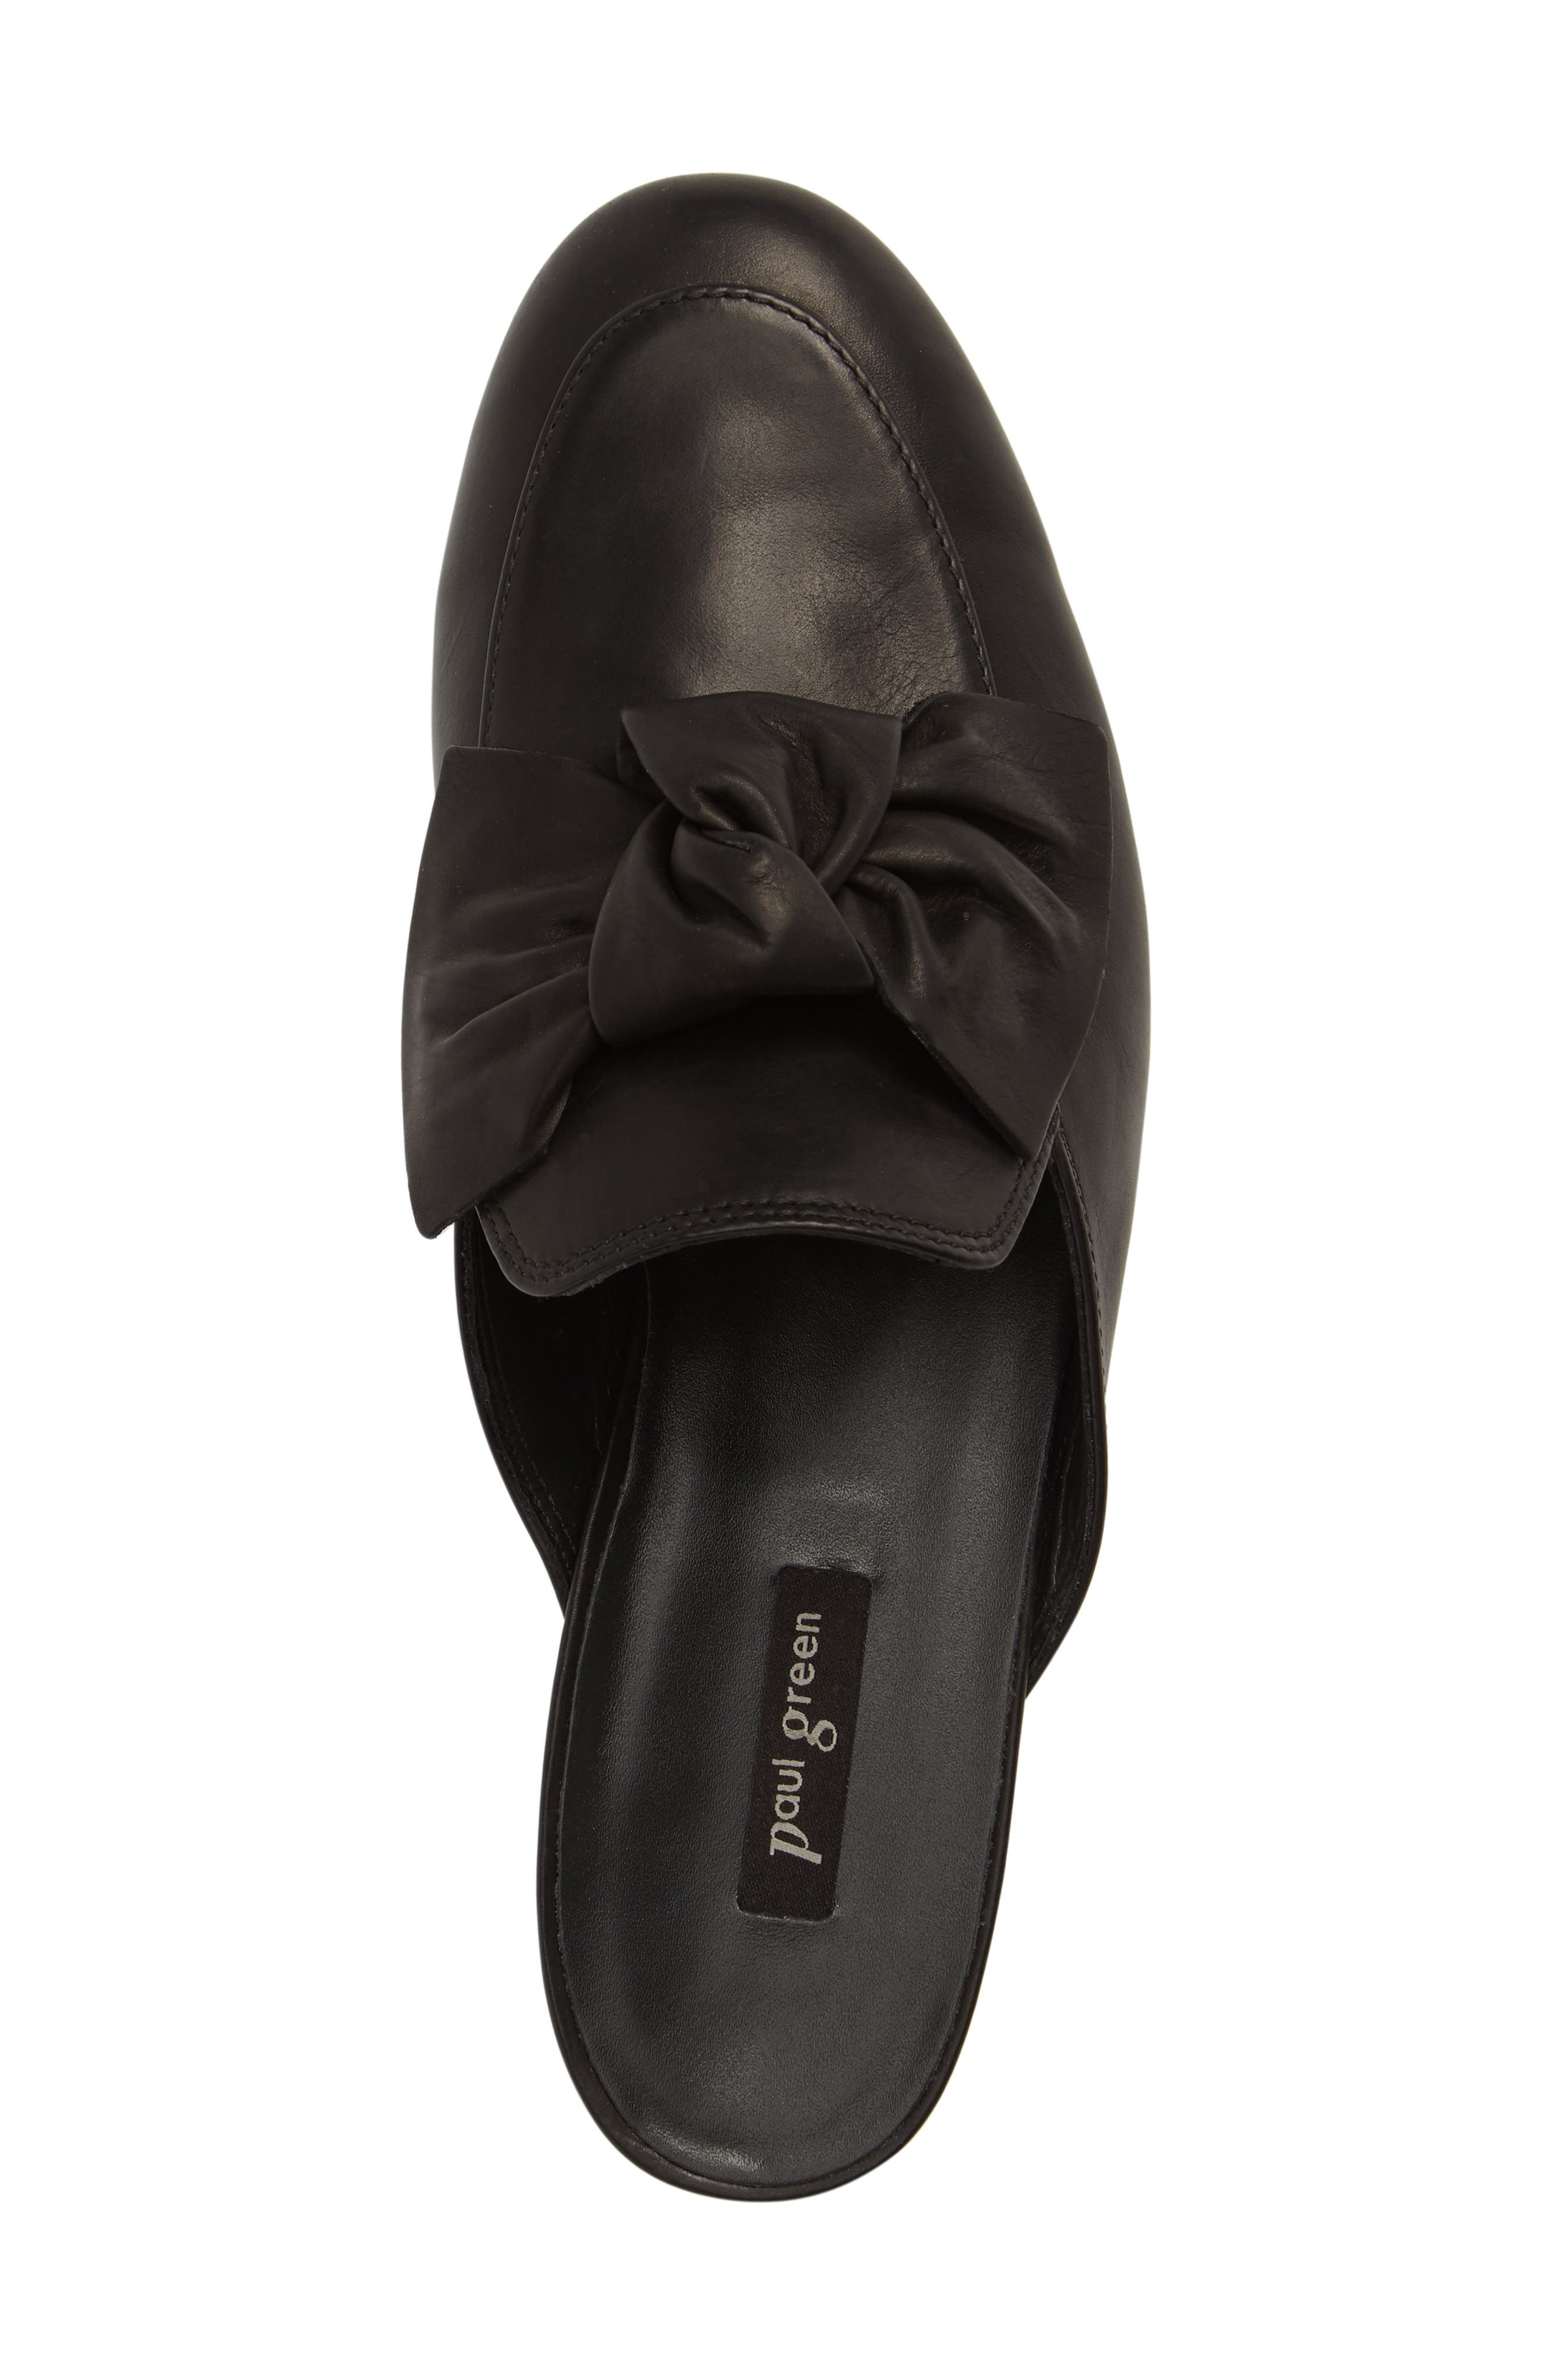 Mary Bow Mule Loafer,                             Alternate thumbnail 5, color,                             Black Leather